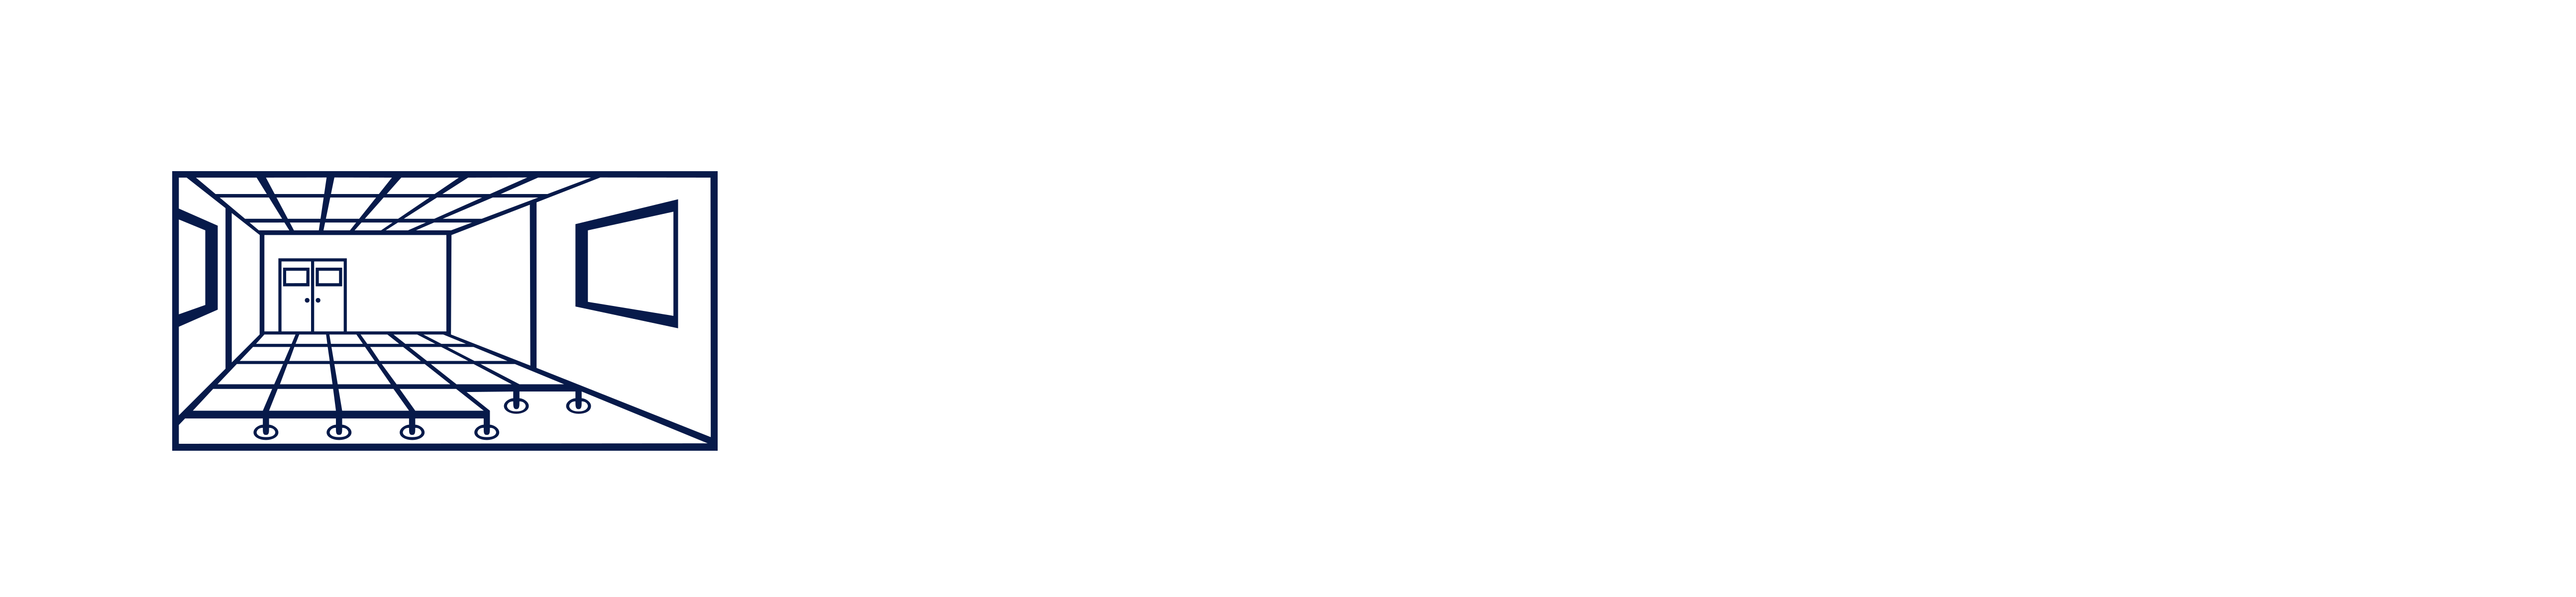 Hutchins & Hutchins Logo in all white